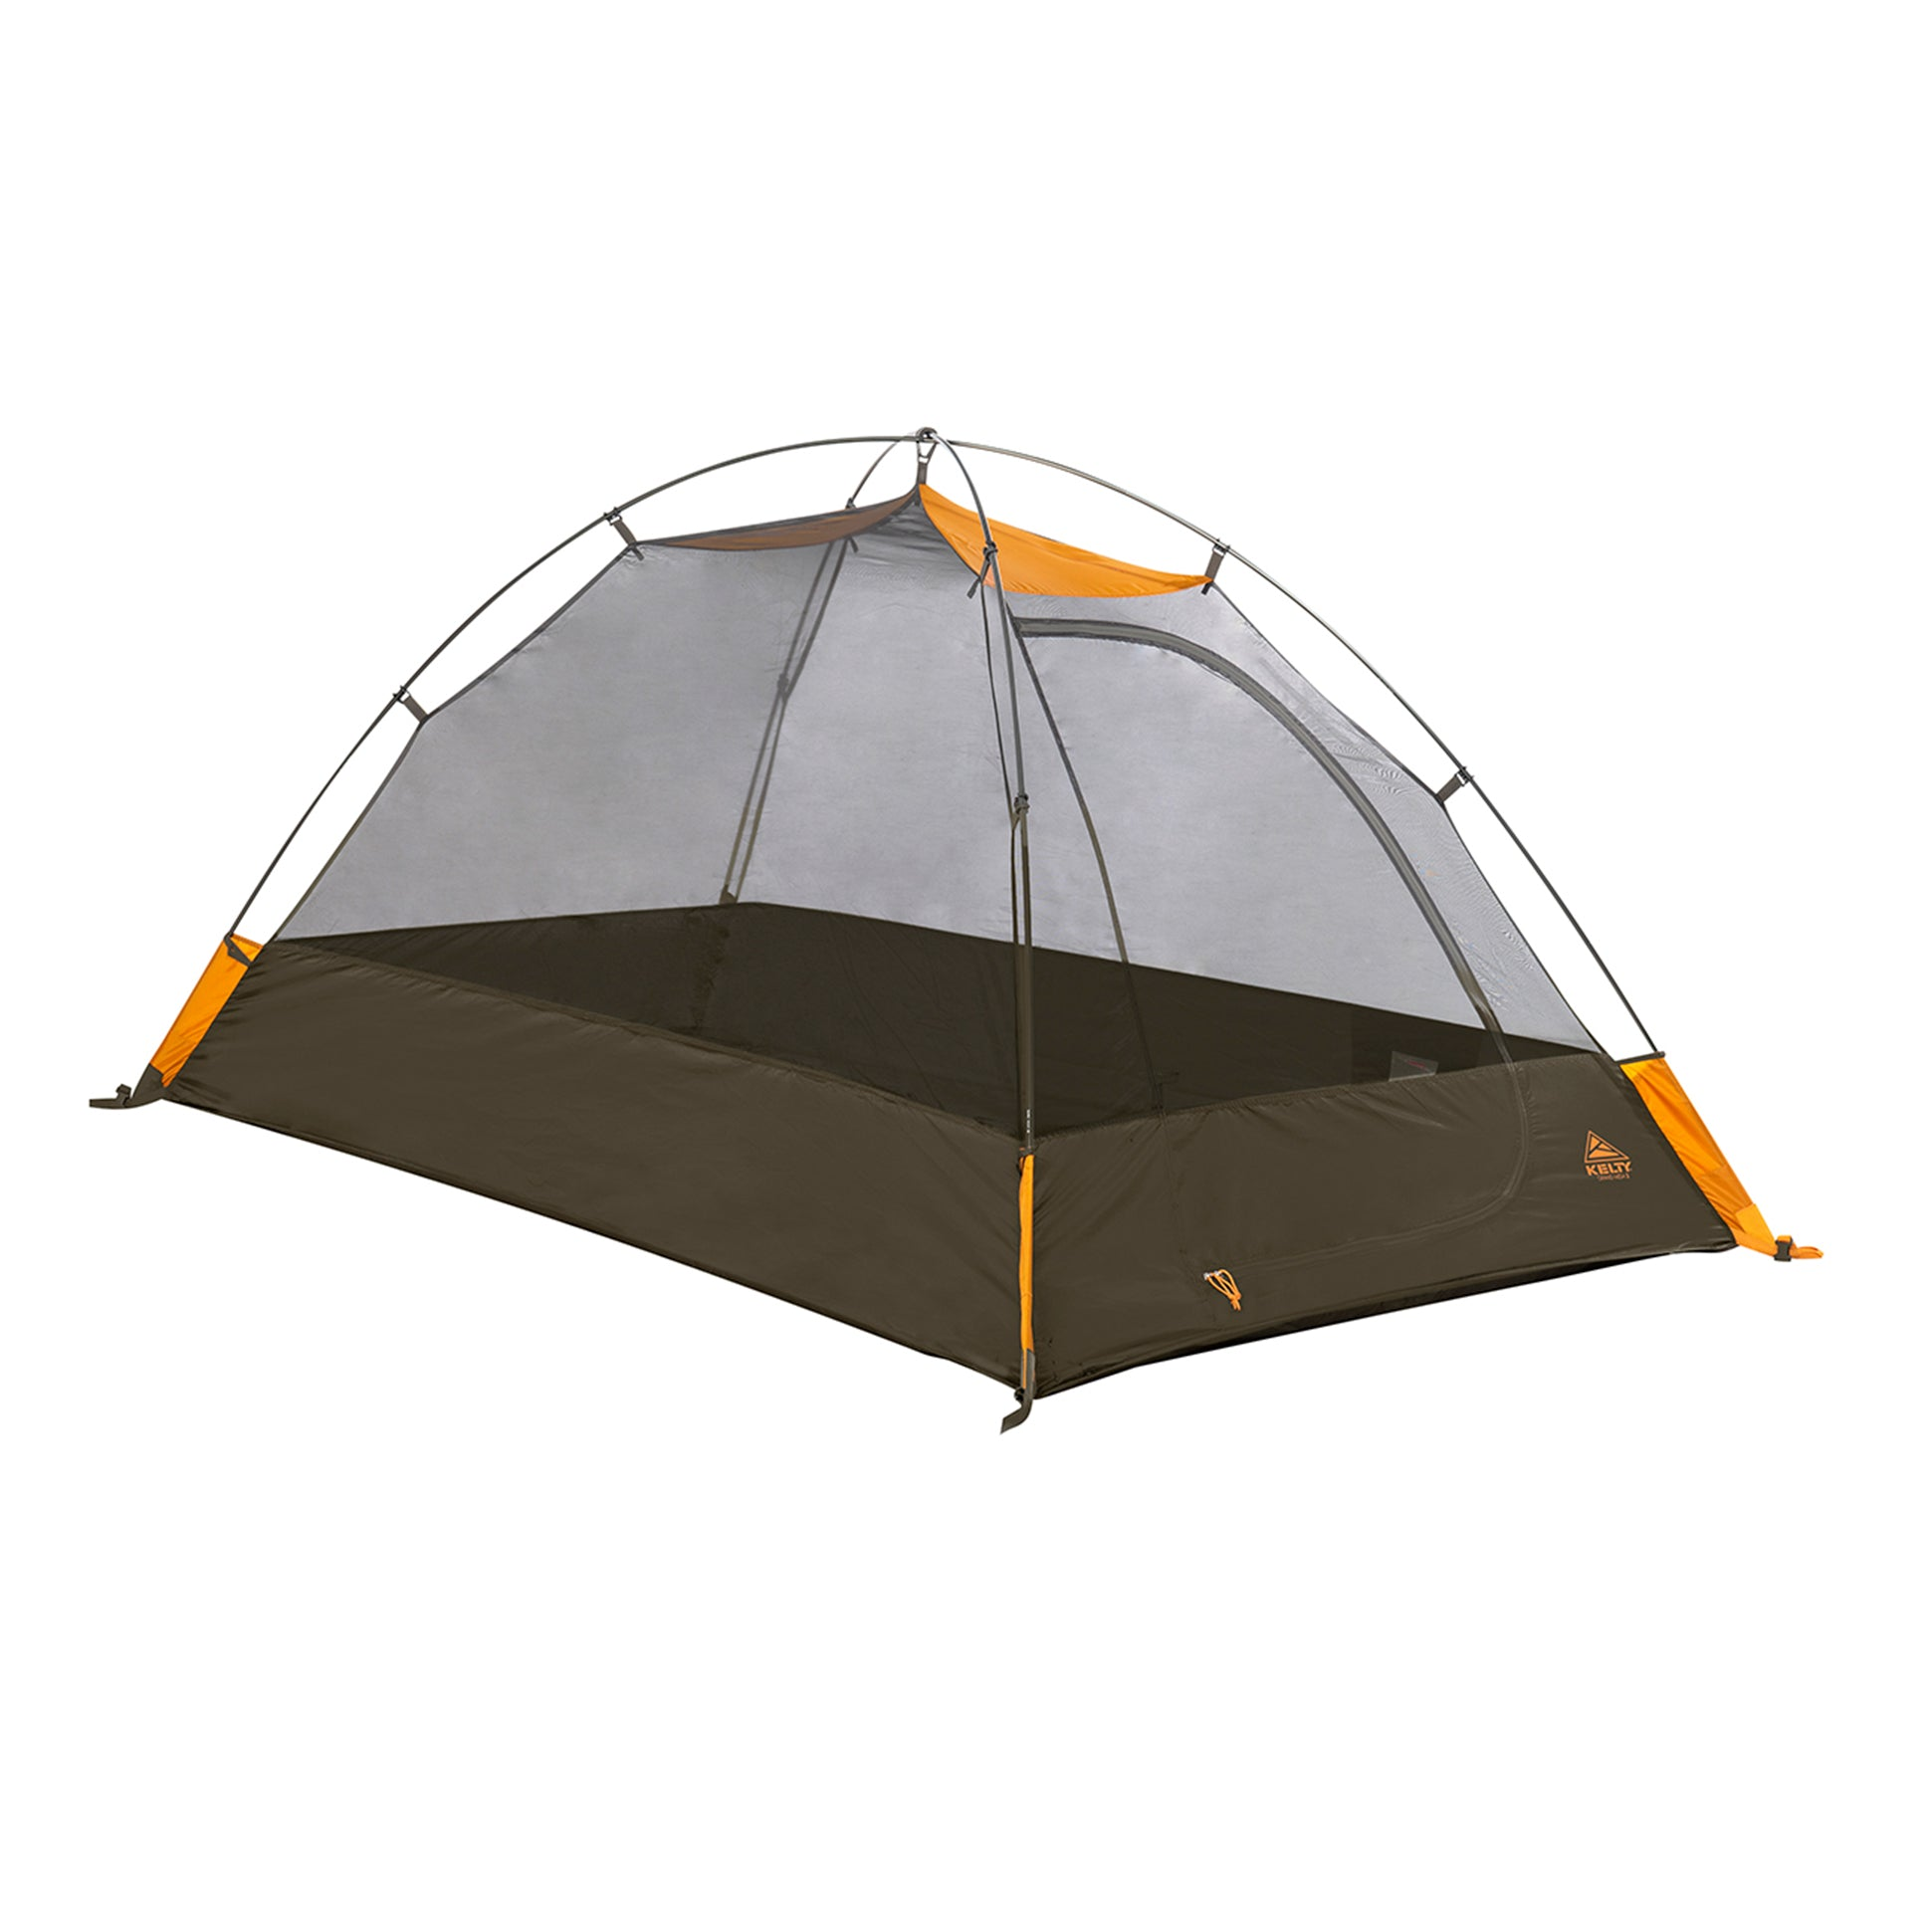 kelty grand mesa 2 person tent fly off front view in colors brown with orange accents